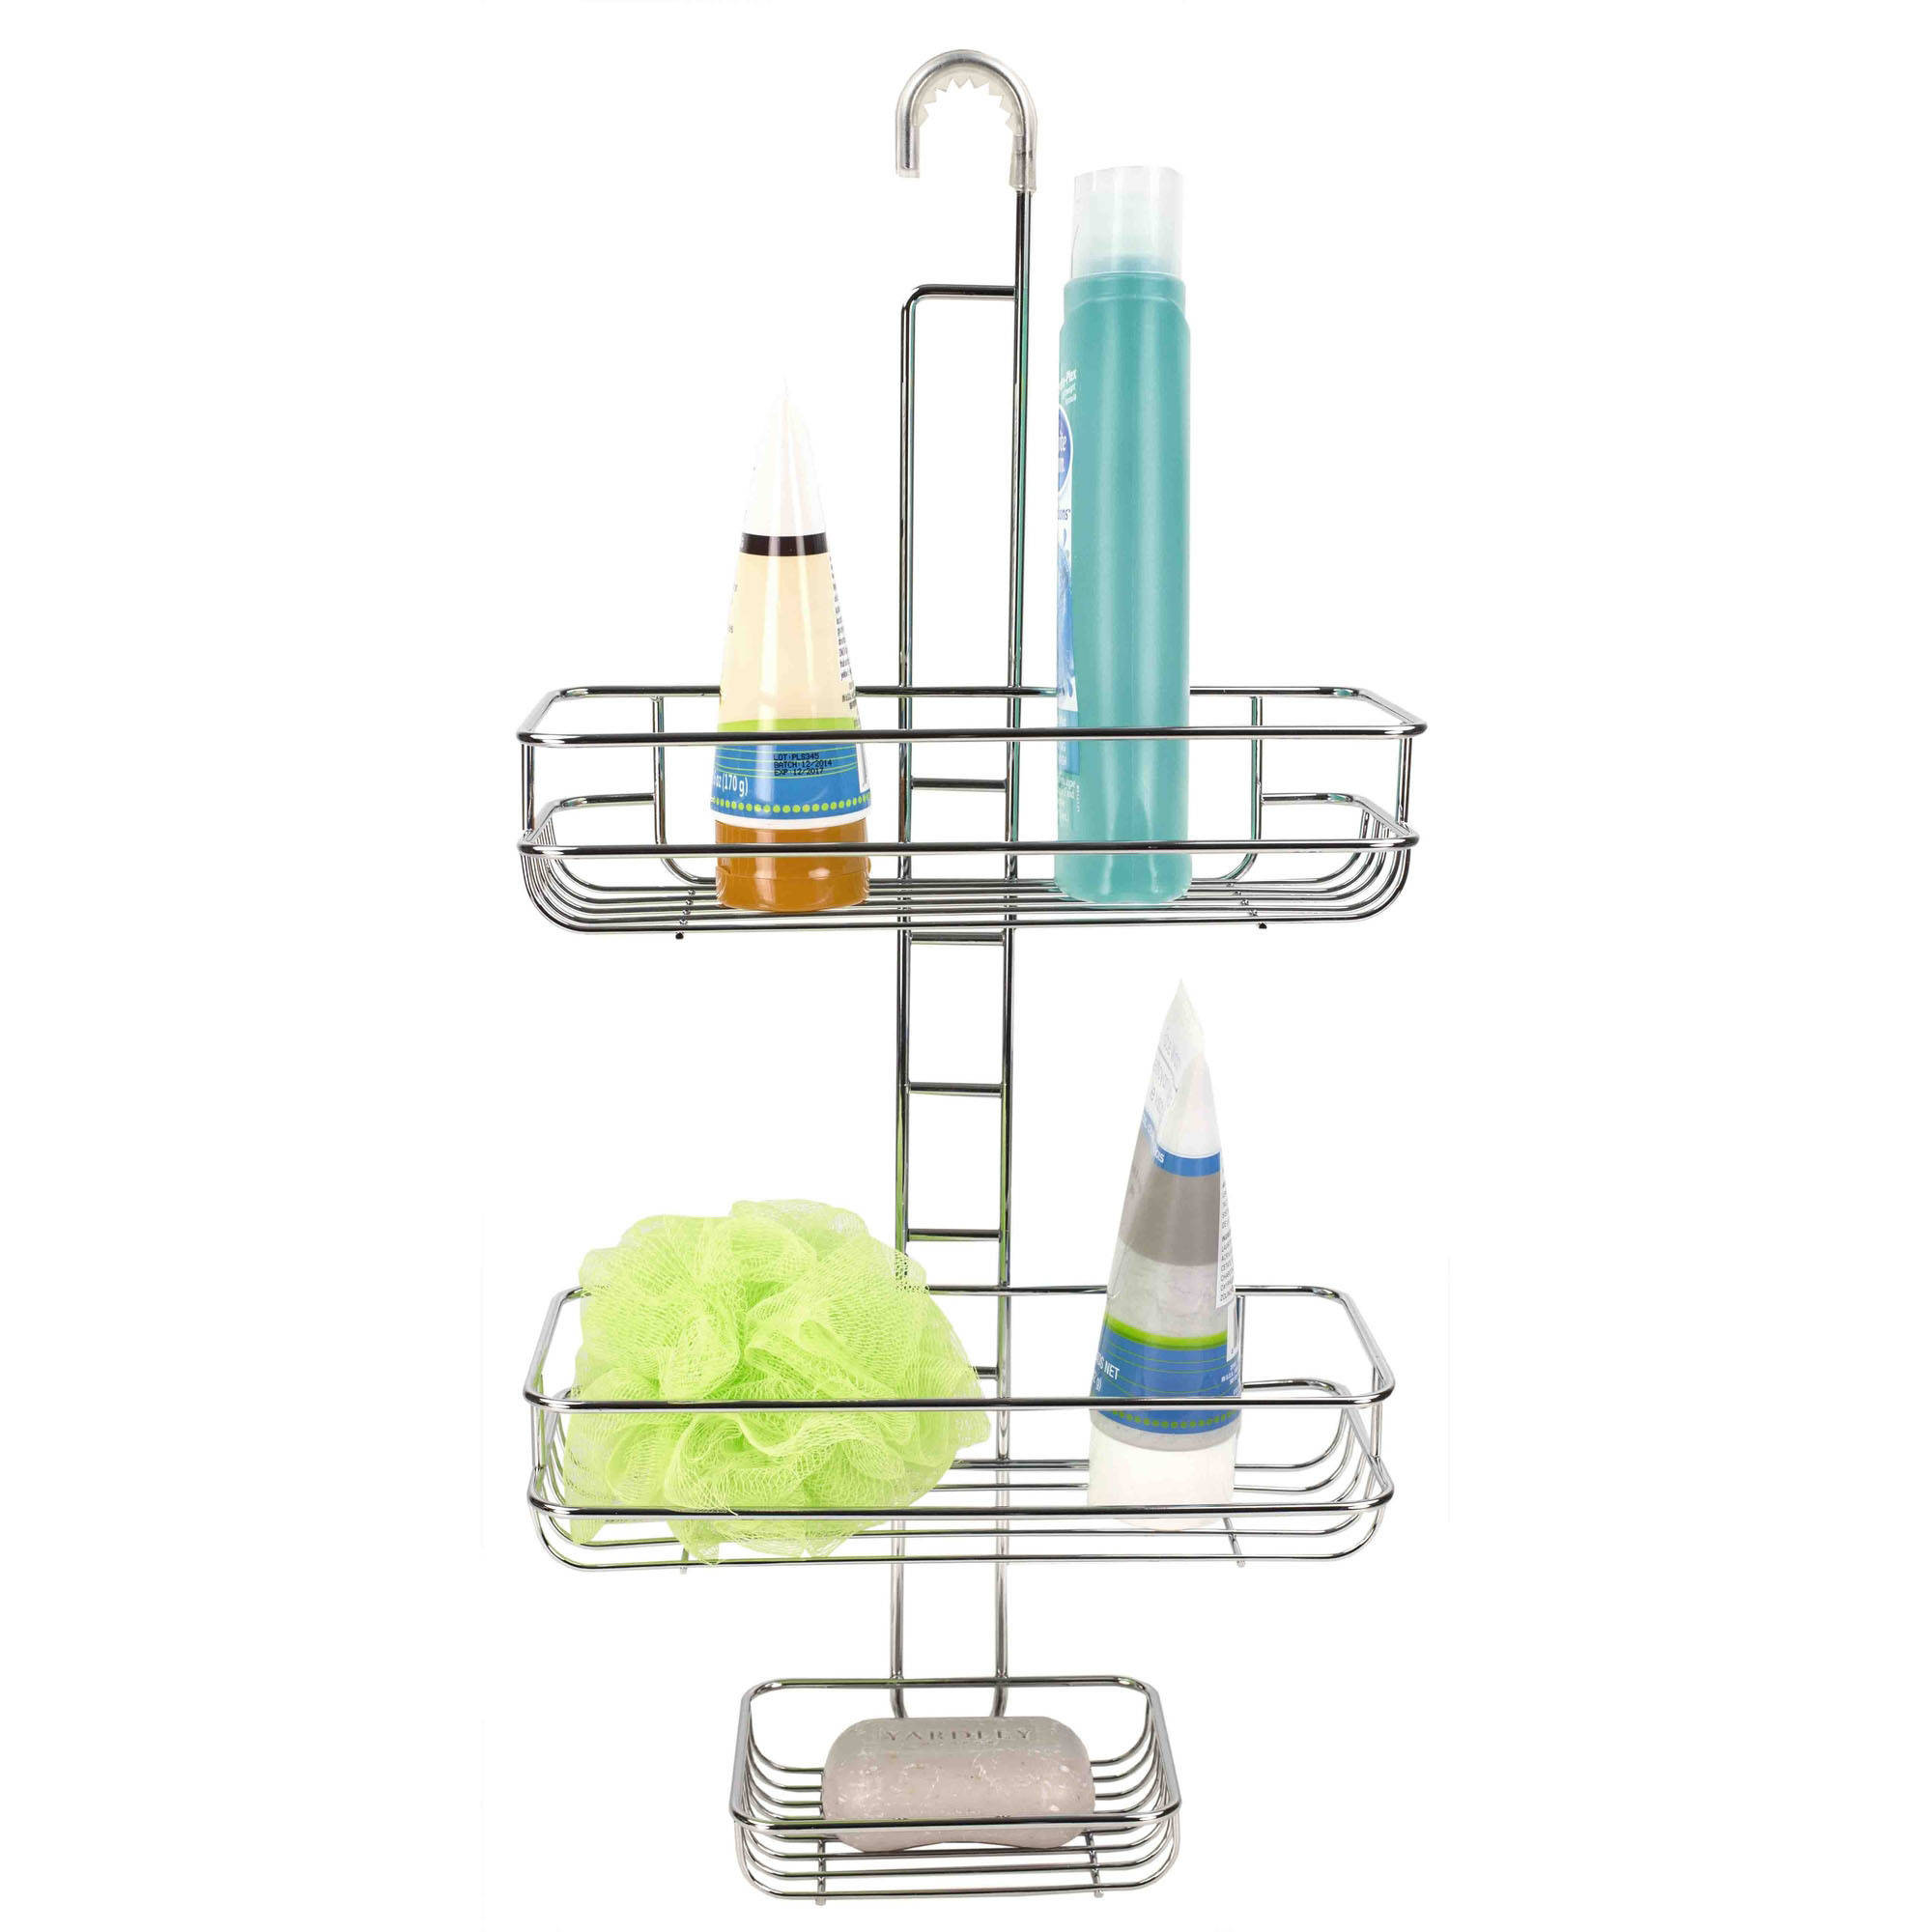 Home Basics 2 Tier Chrome Shower Caddy with Soap Dish by HDS TRADING CORP